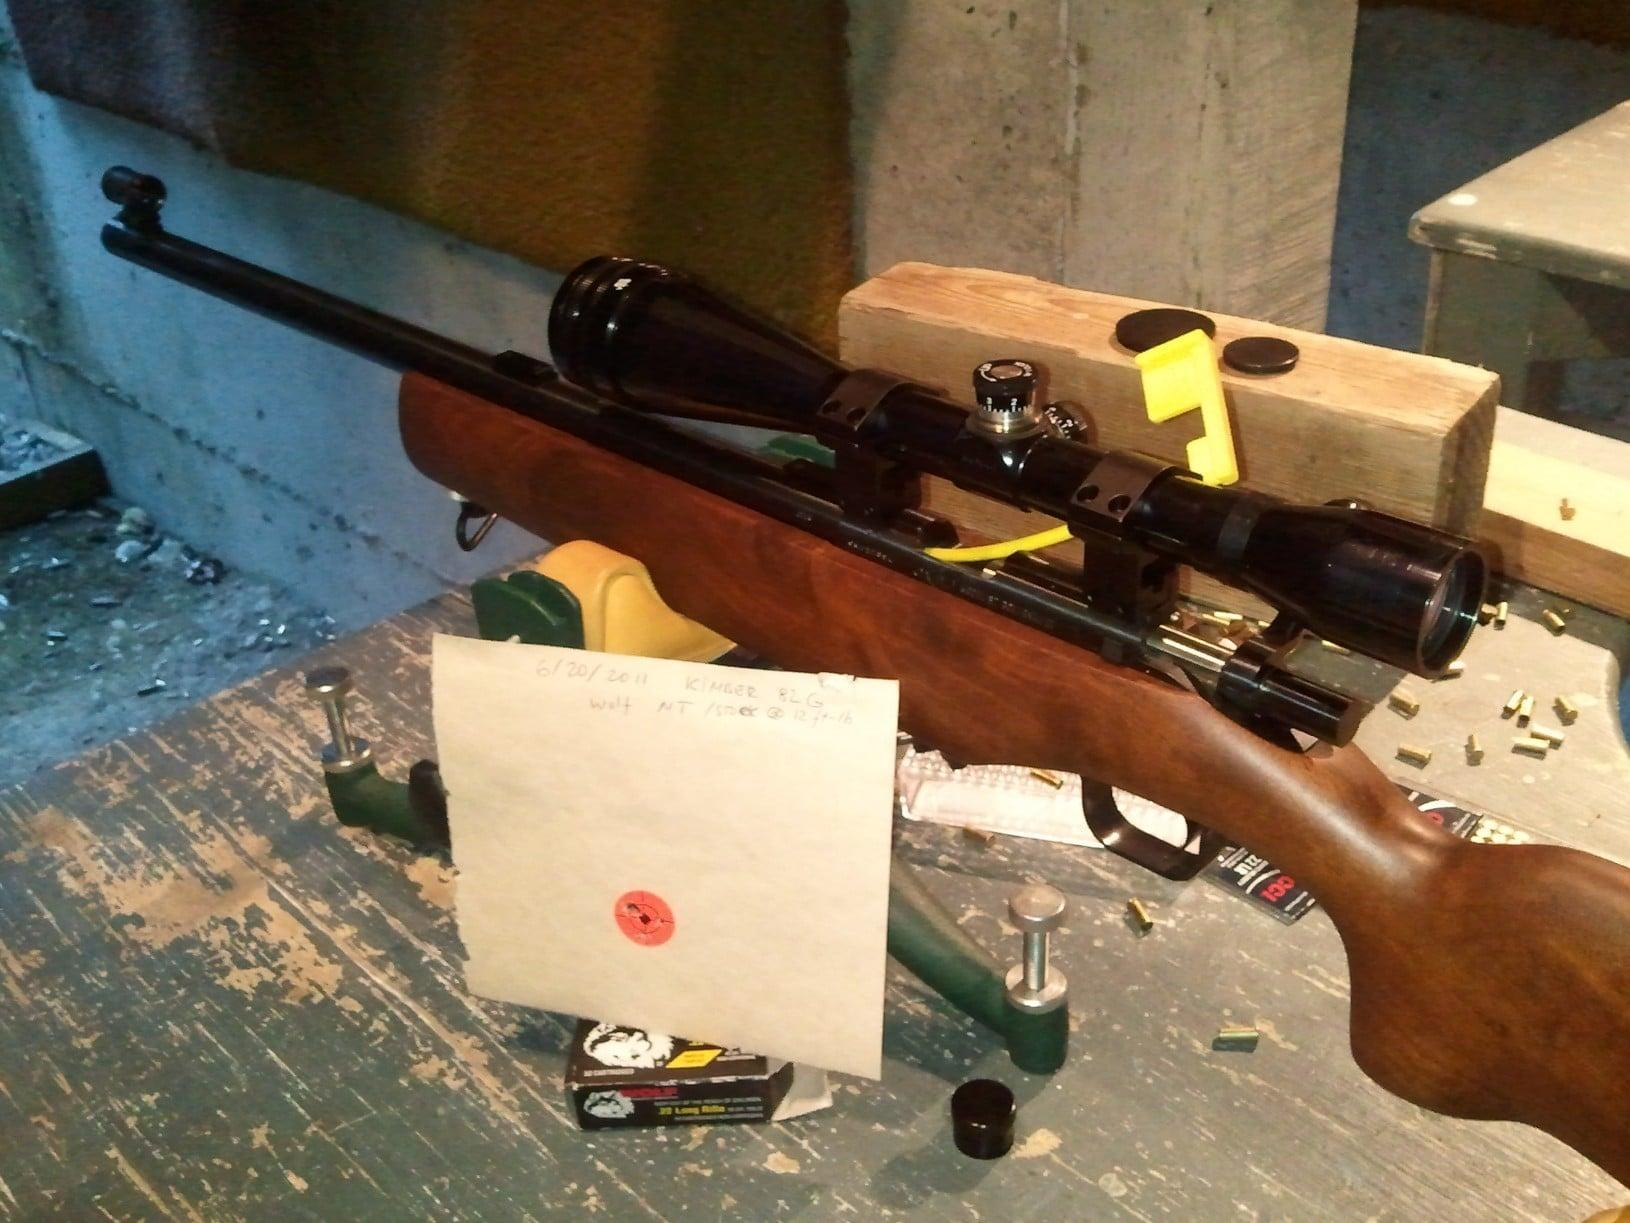 Kimber M82 is chambered in .22 Long Rifle RF